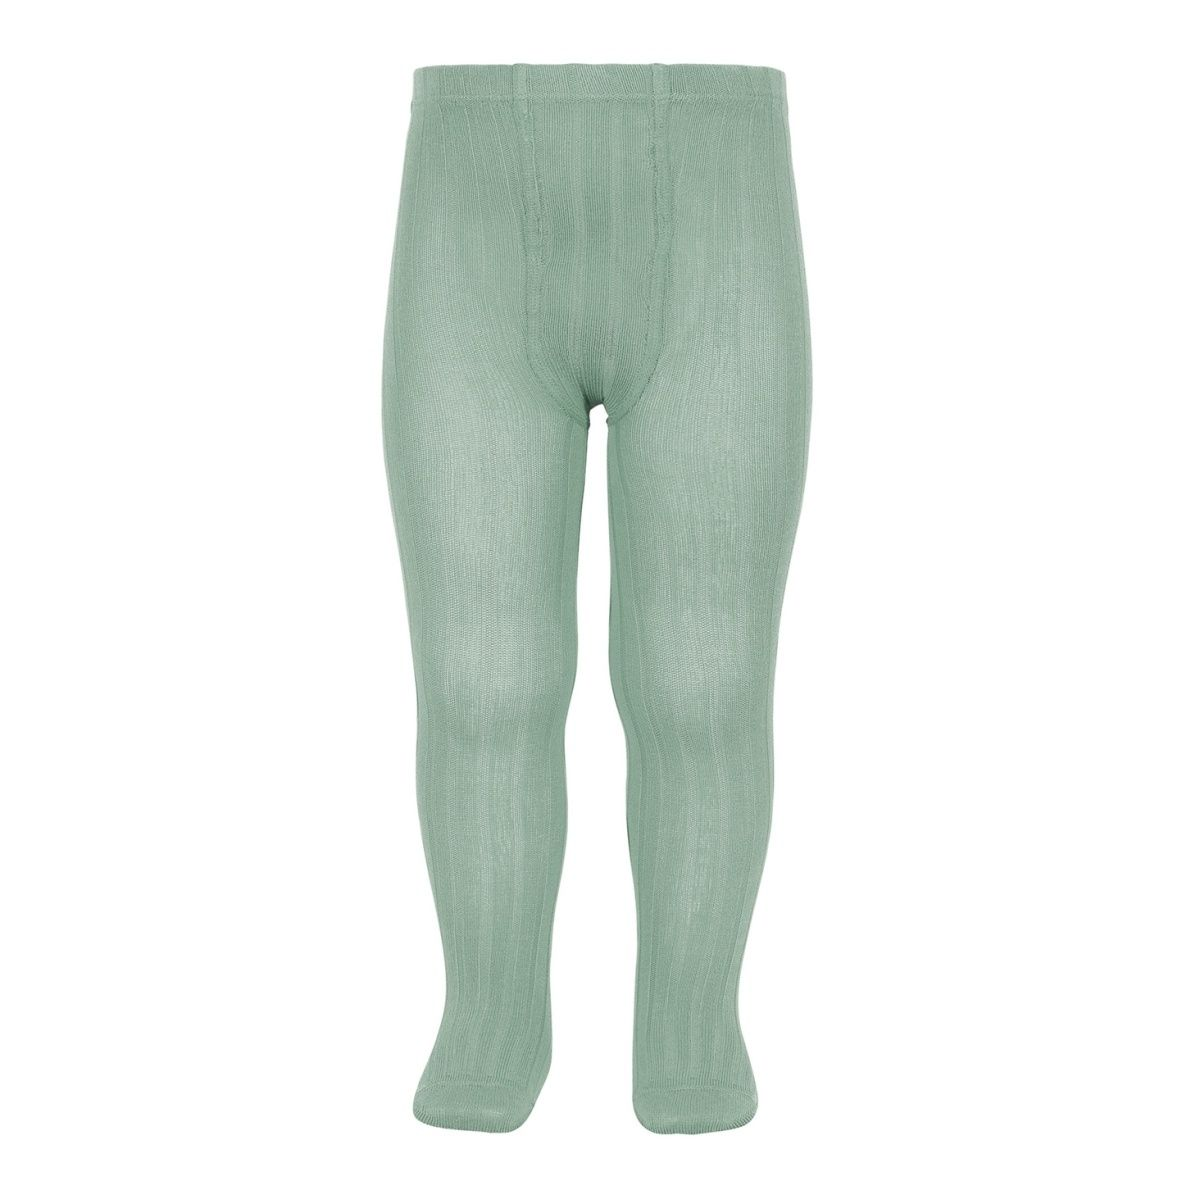 Wide Ribbed Cotton Tights jade - Condor